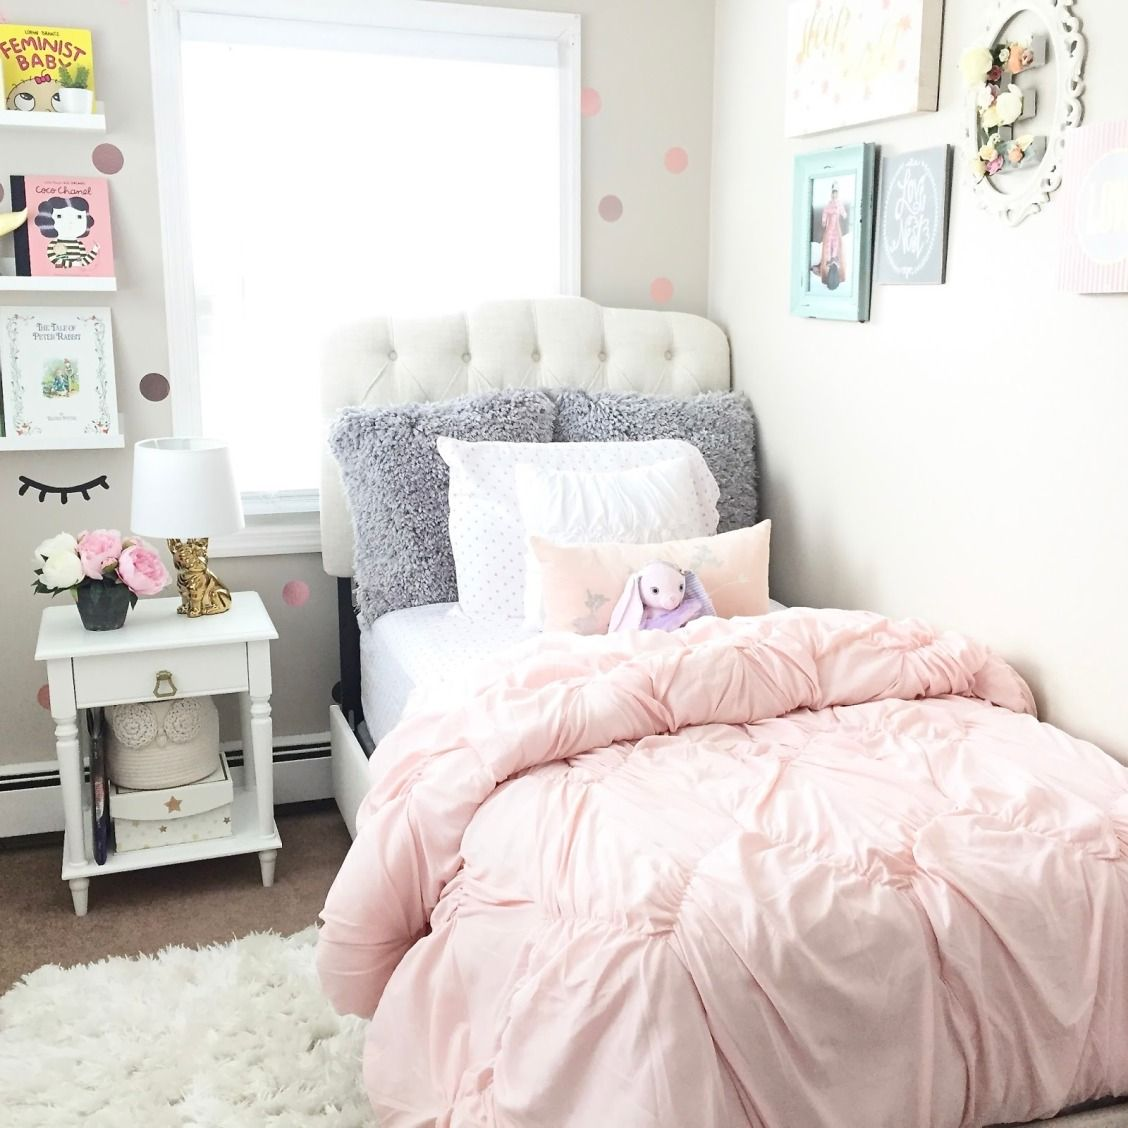 but budget only tool diy to made from not a bed modern it this the decorator truly frames use did for gorgeous try create home they tools